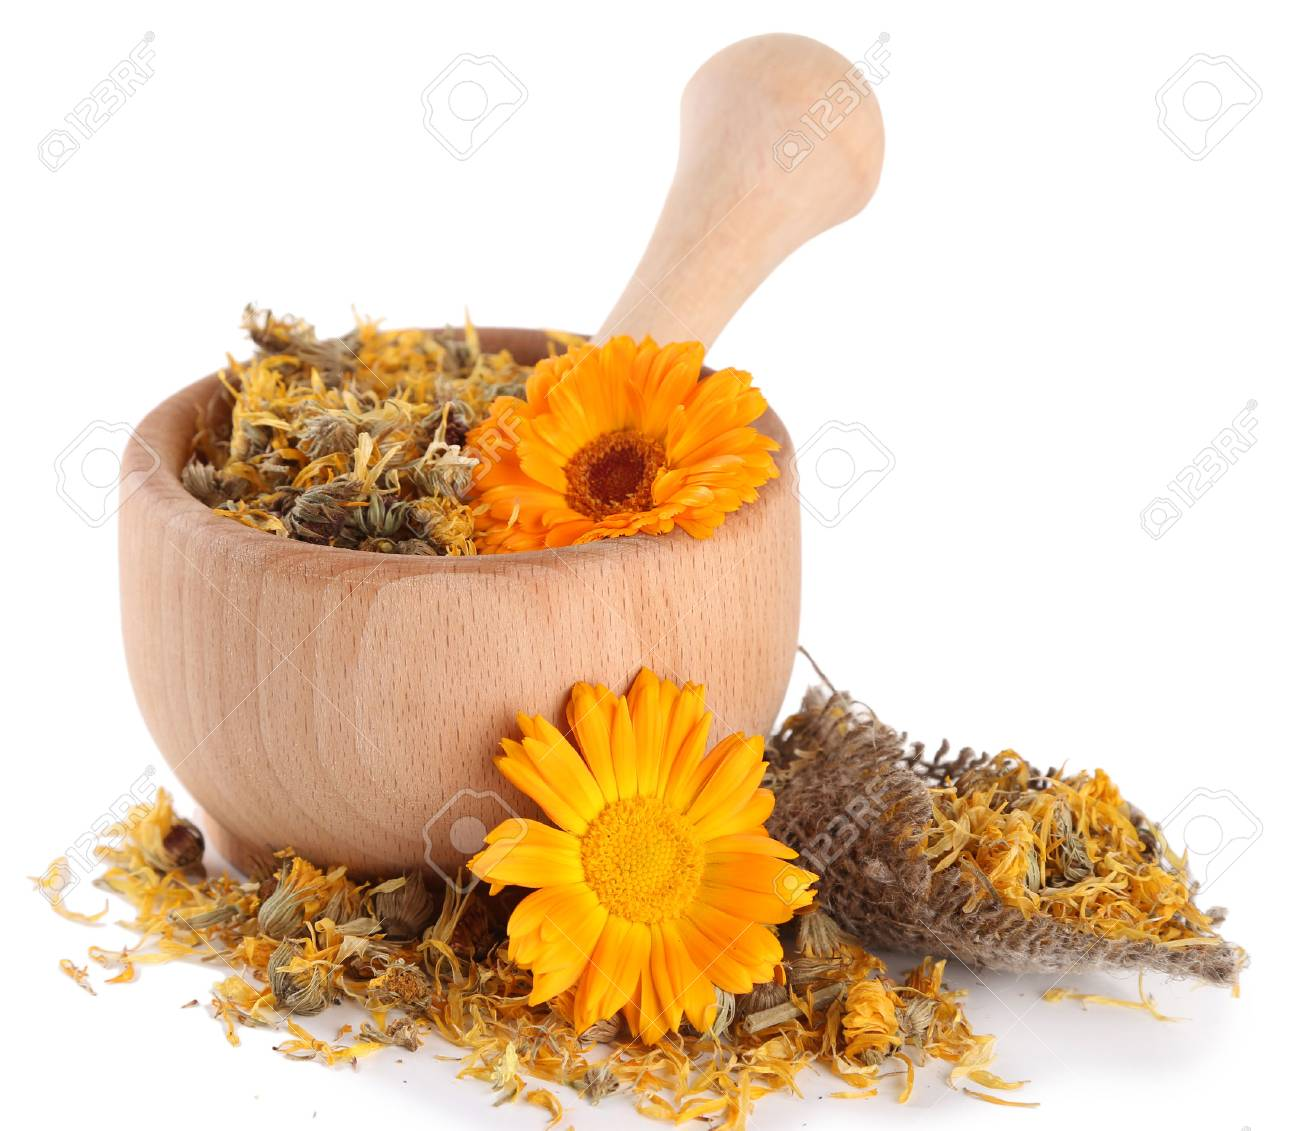 Fresh and dried calendula flowers in wooden mortar  isolated on white Stock Photo - 24864273